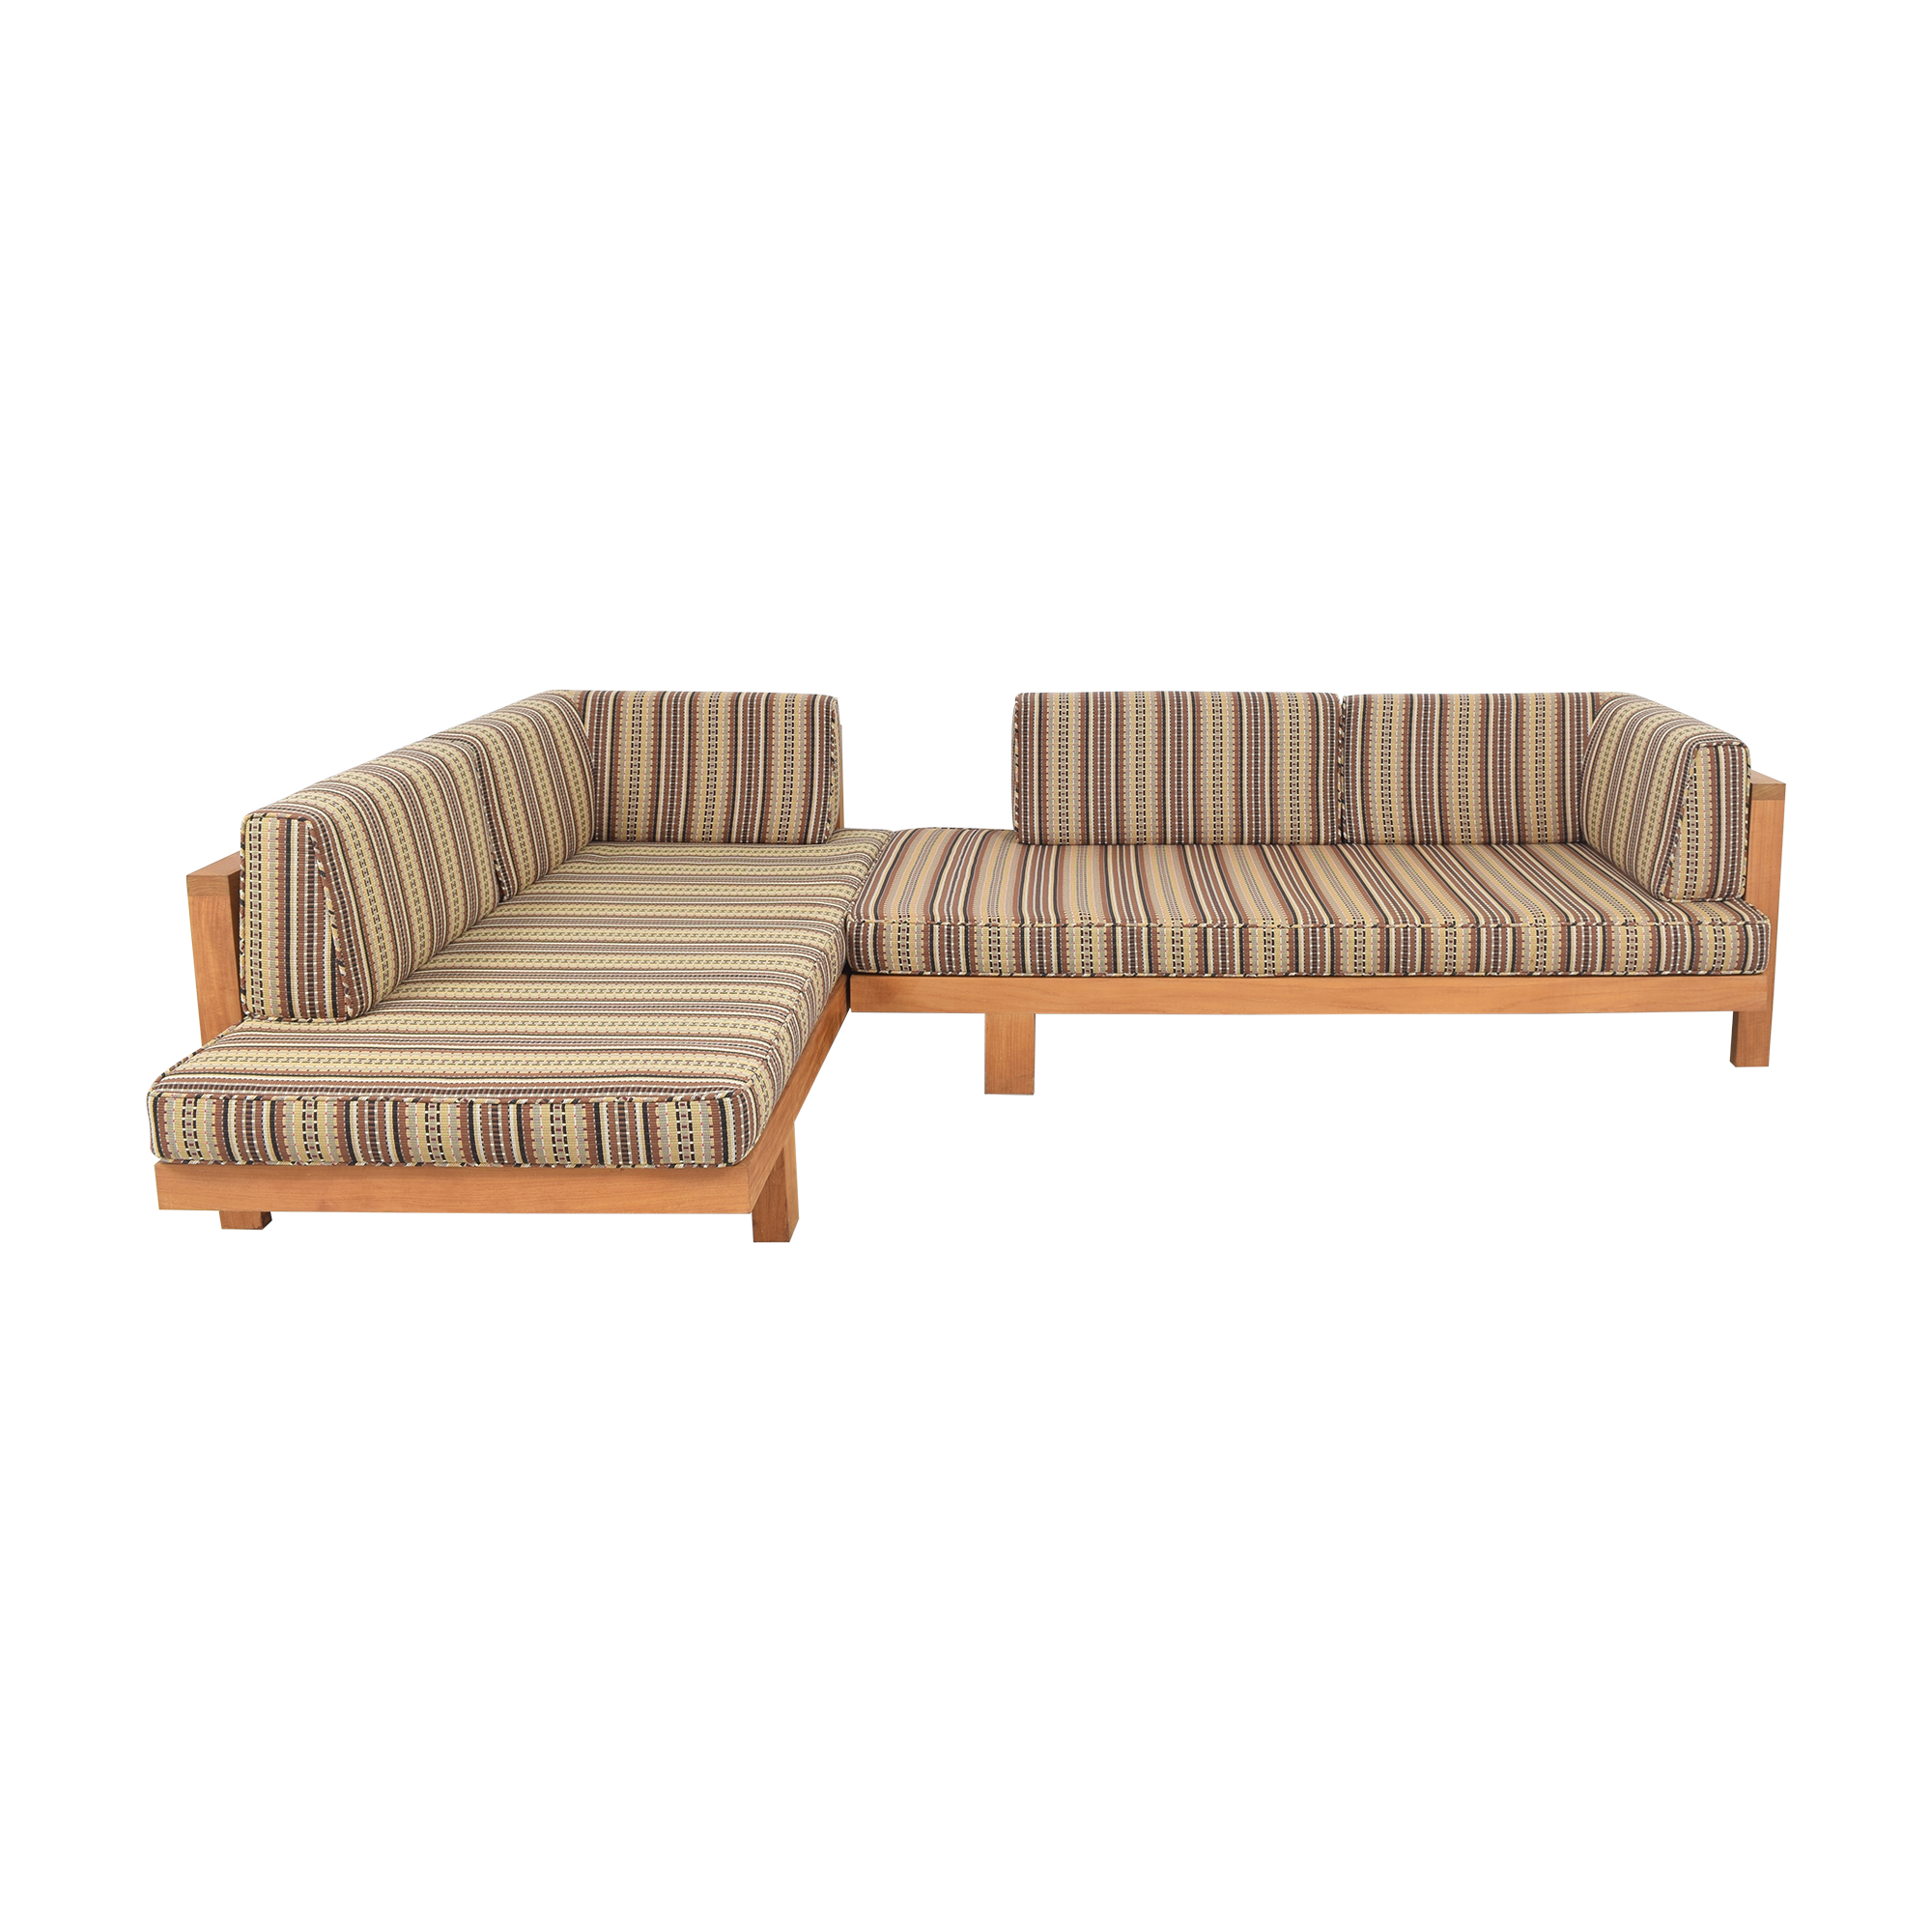 Henry Hall Designs Tru Pure Sectional Sofa / Sofas